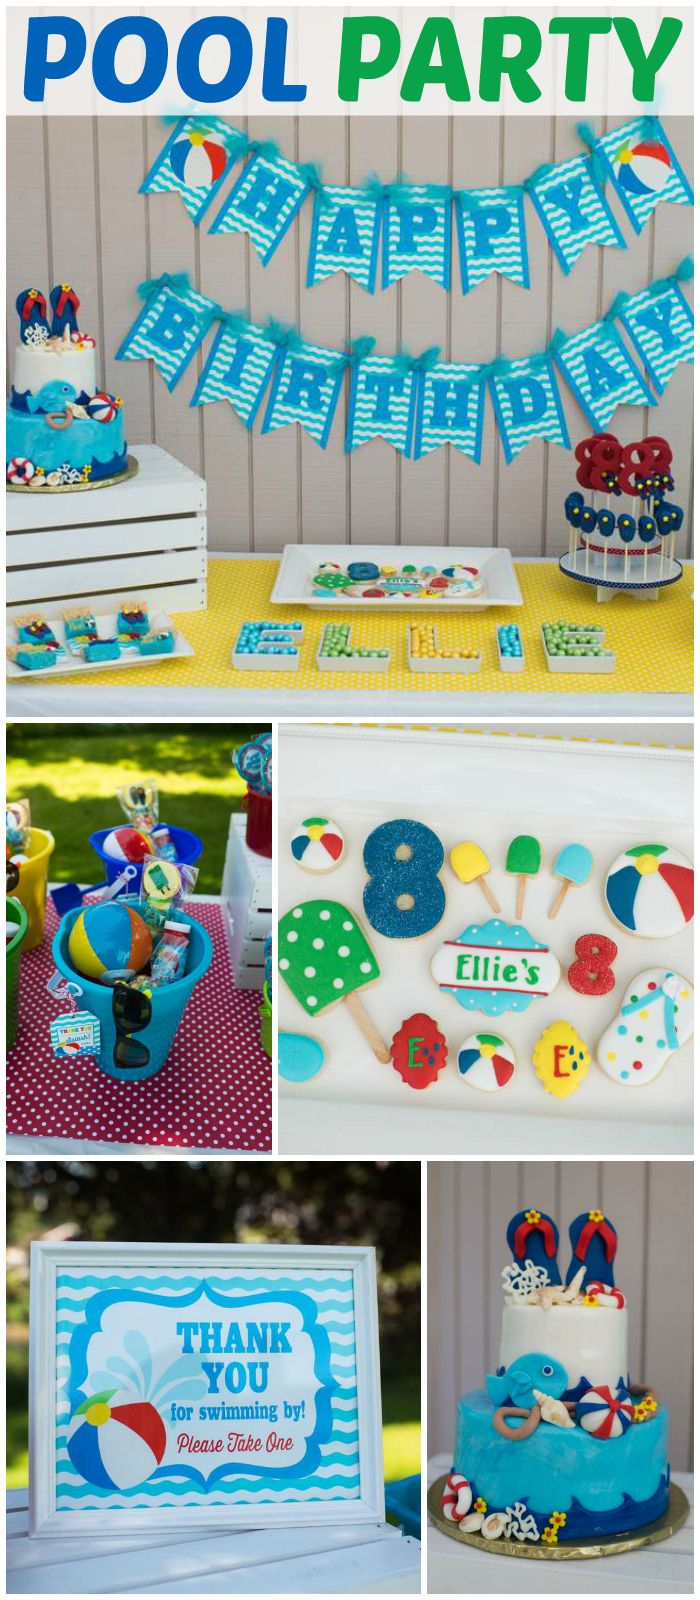 Childrens Pool Party Ideas beach surf birthday daniels pool party Lots Of Beach Balls And Fun At This Pool Party Bash See More Party Ideas